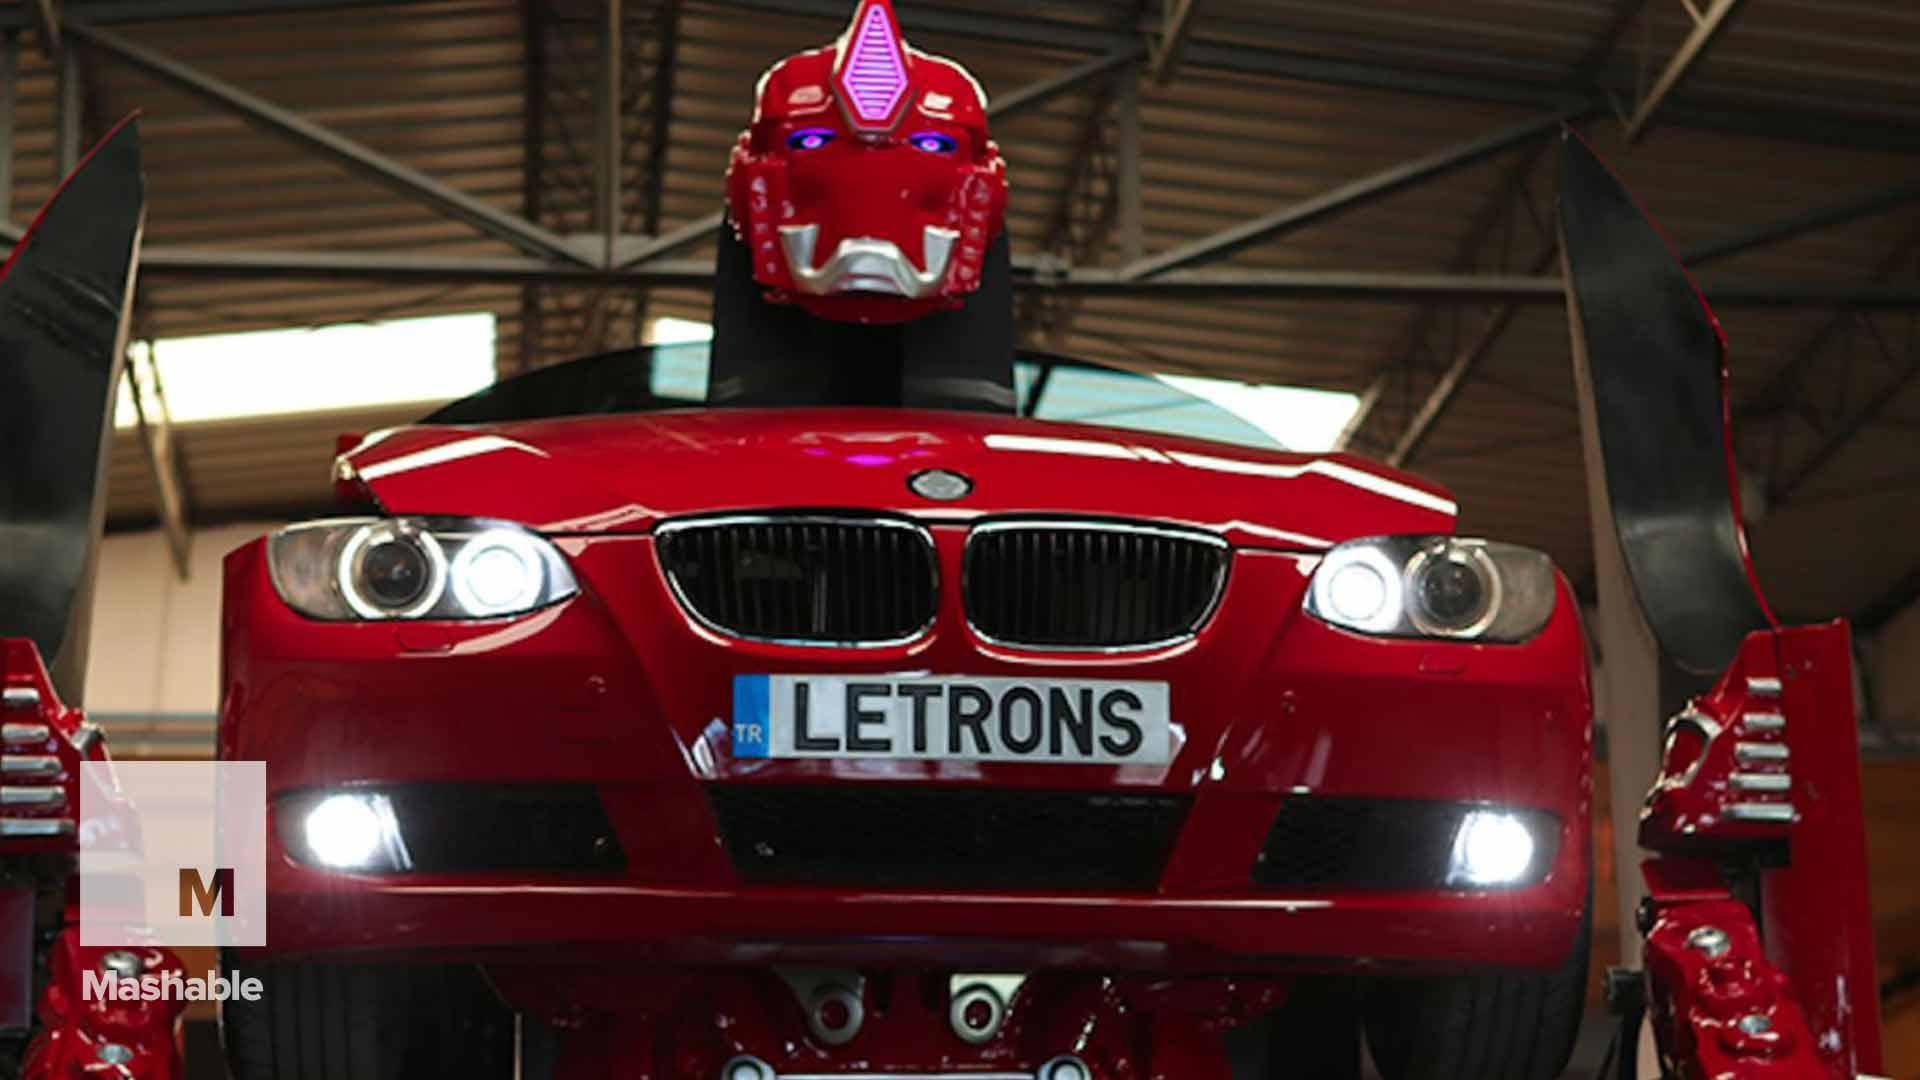 It takes 30 seconds for this BMW to morph into a real-life Transformer